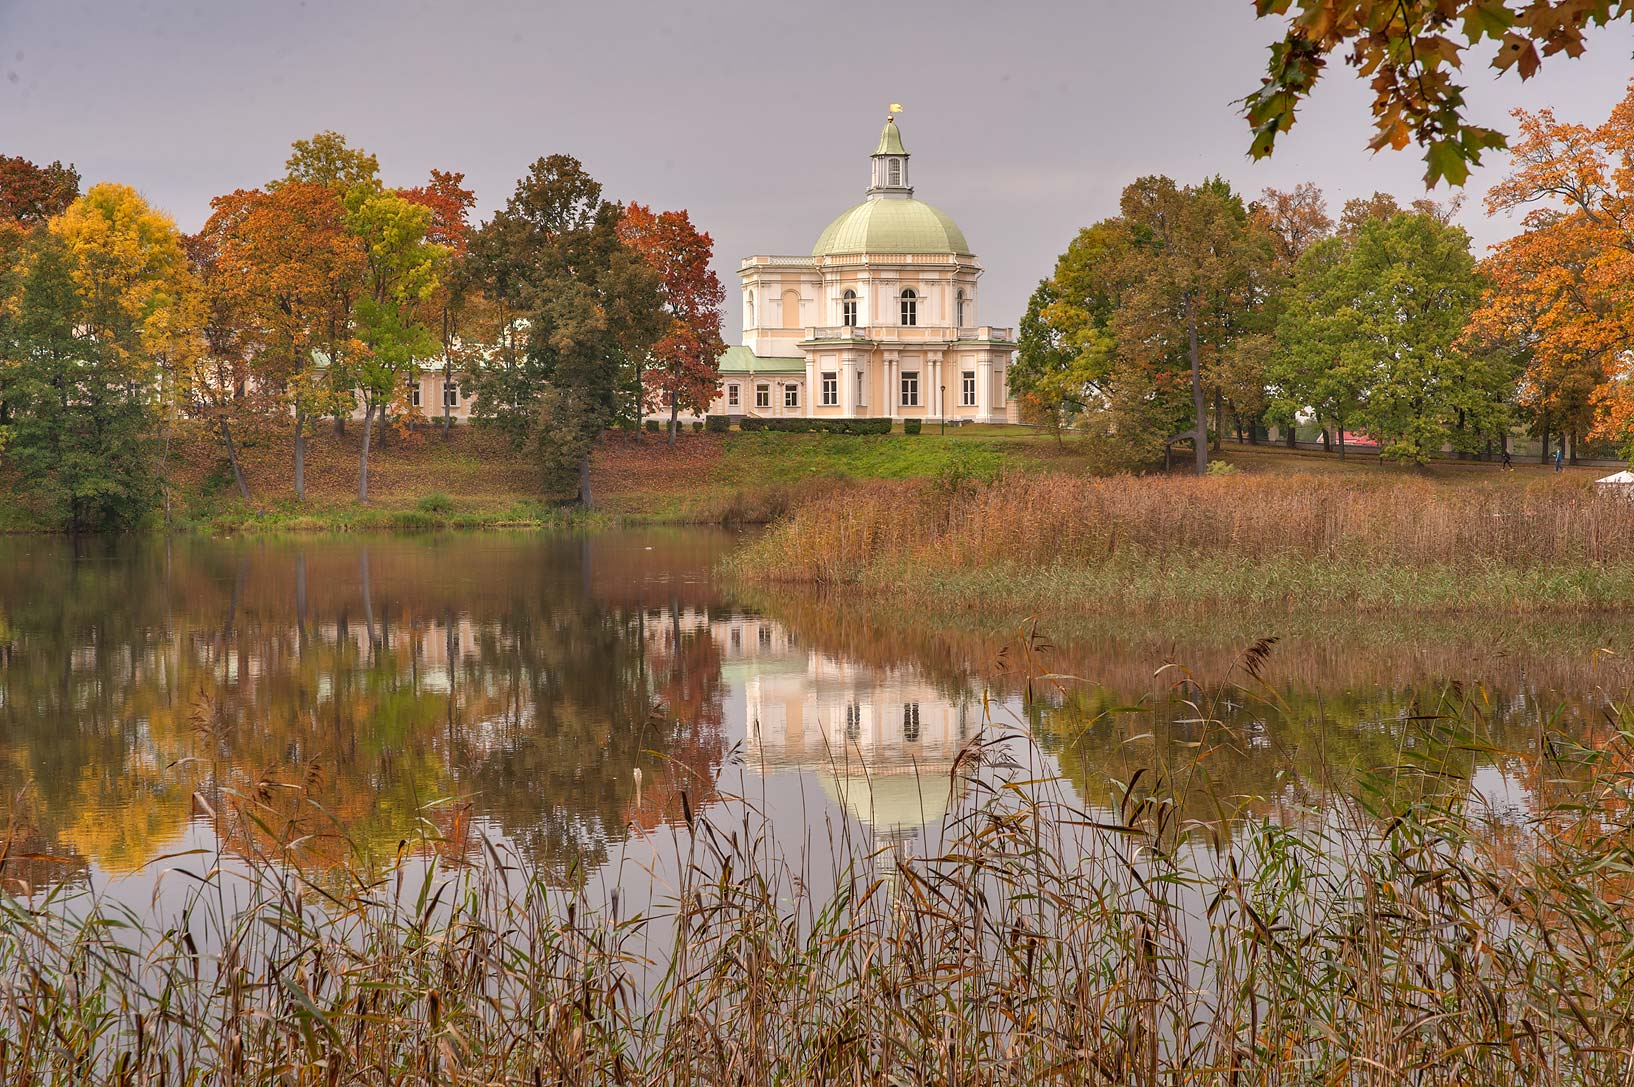 Lower Pond and Japanese Pavilion of Menshikov...a suburb of St.Petersburg, Russia